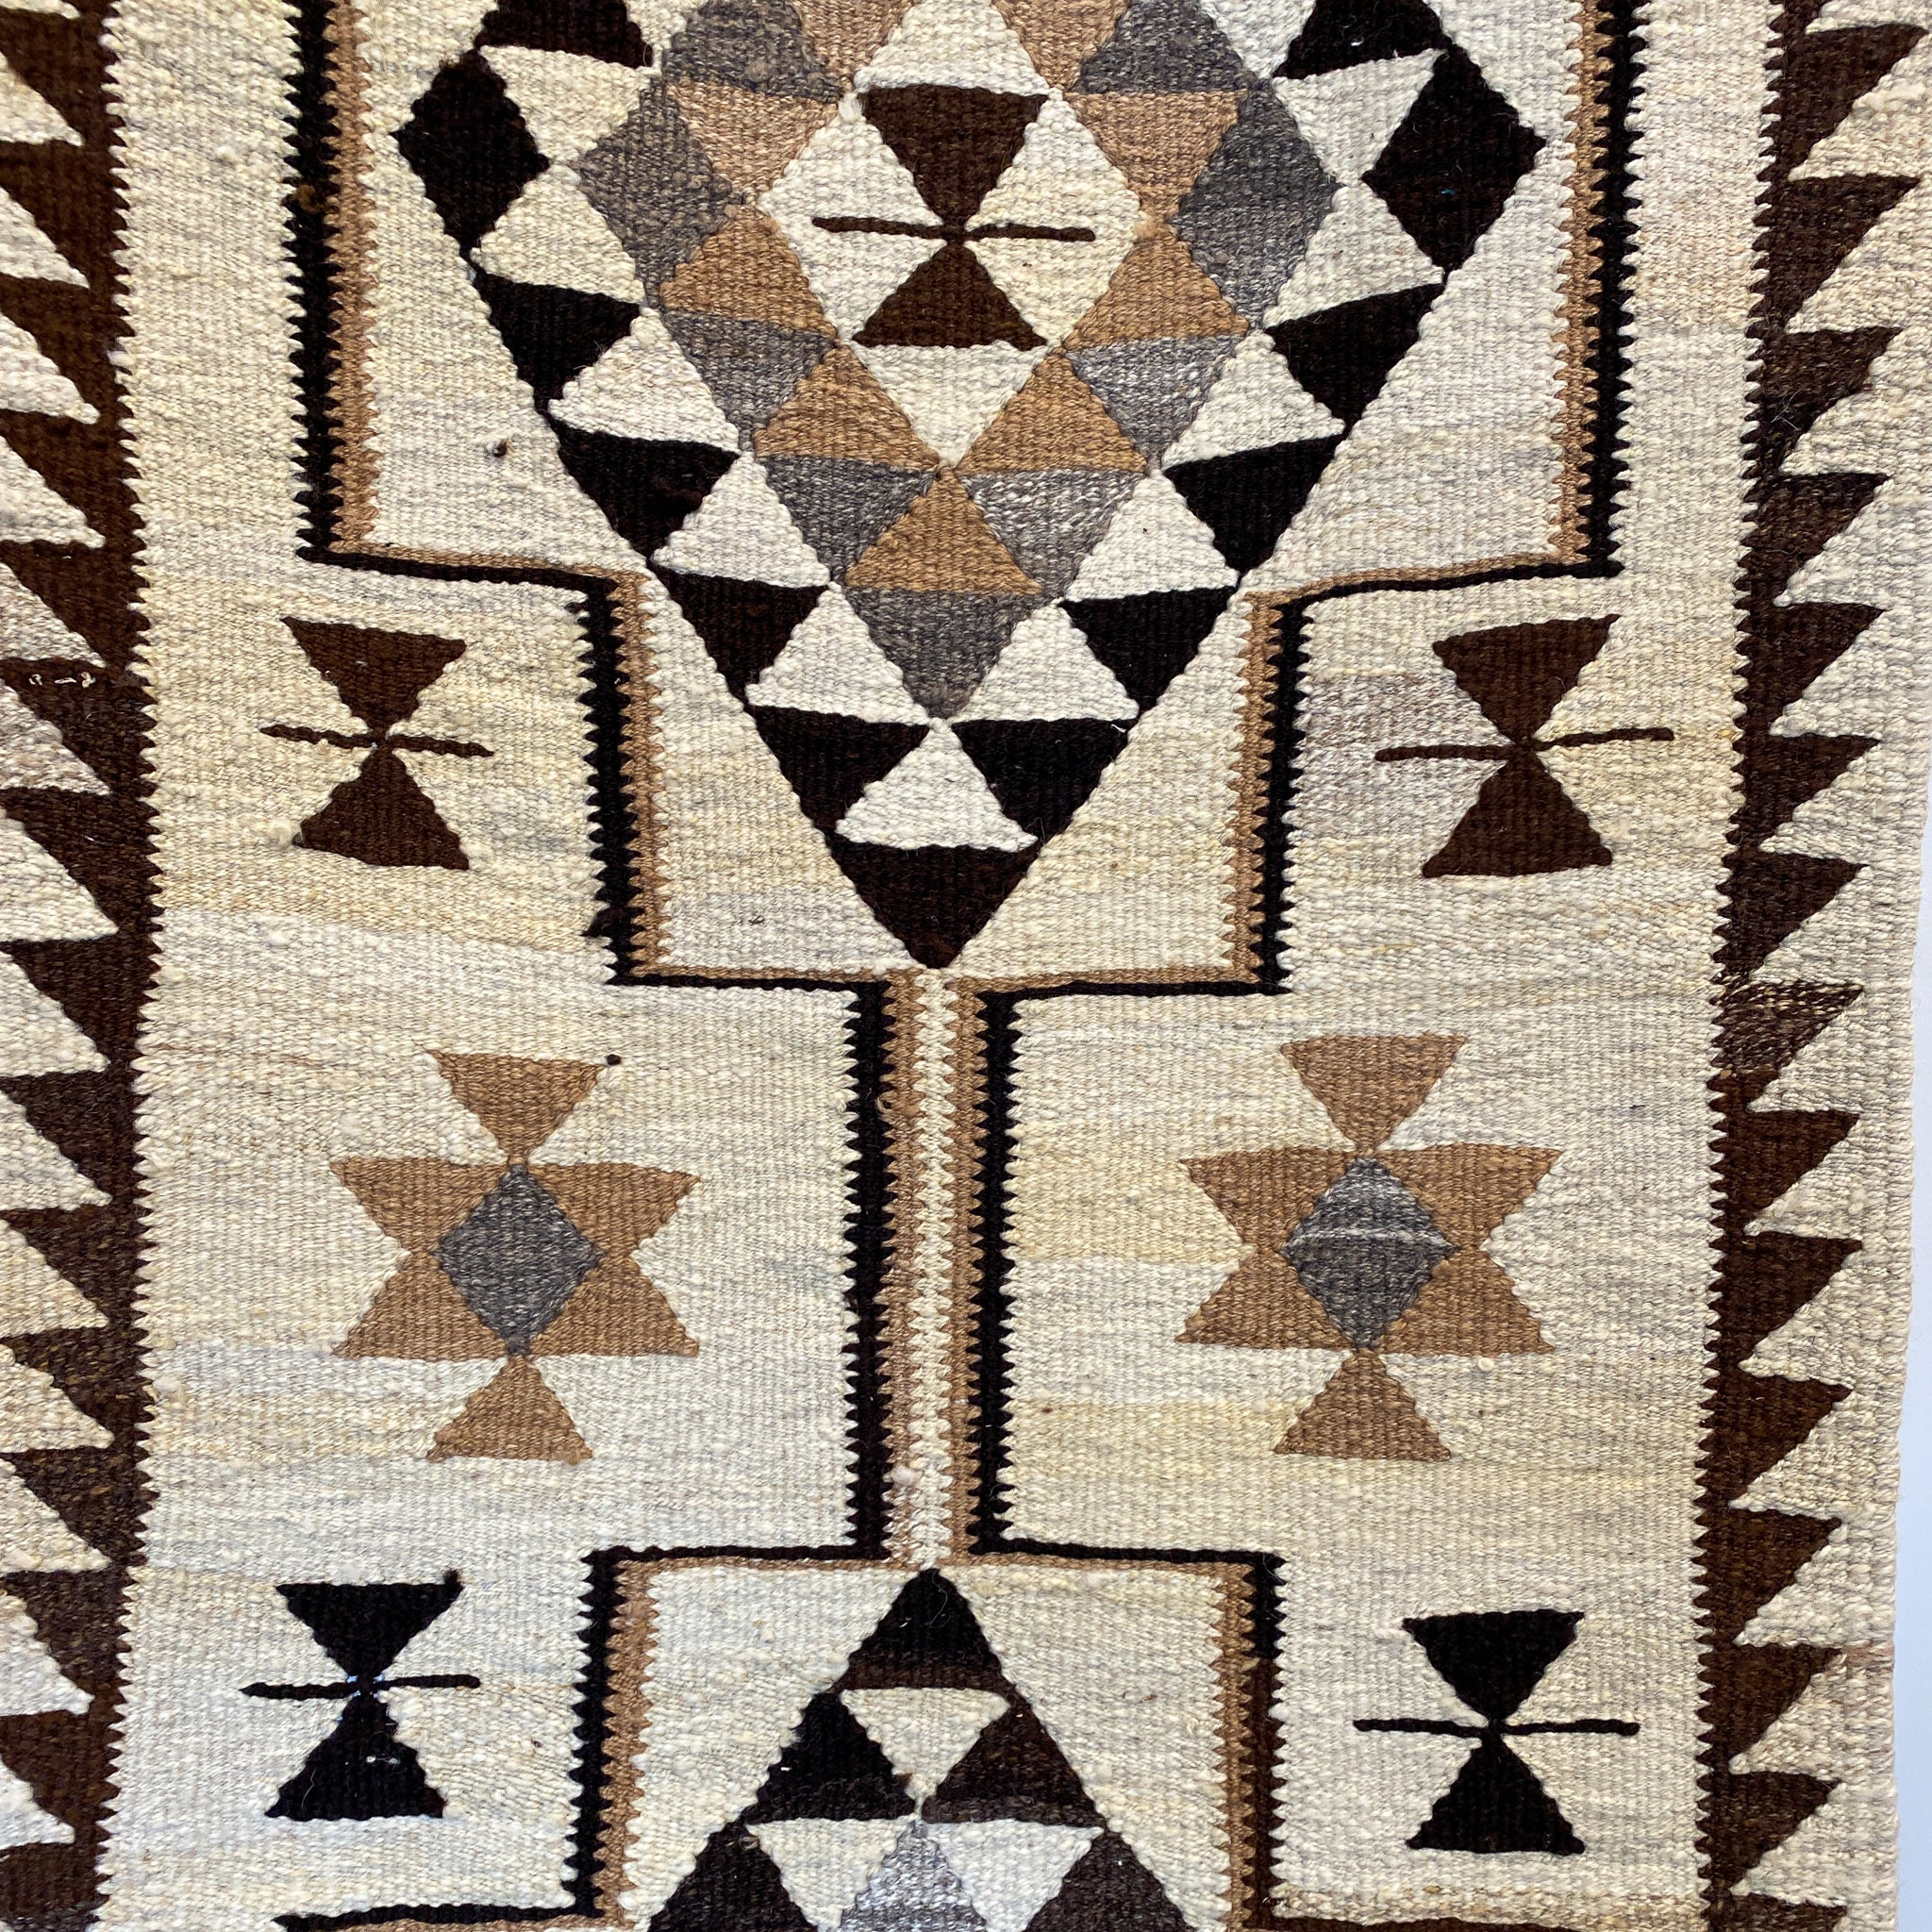 ON HOLD 2517 Handwoven Vintage Rug 2'10x10'5